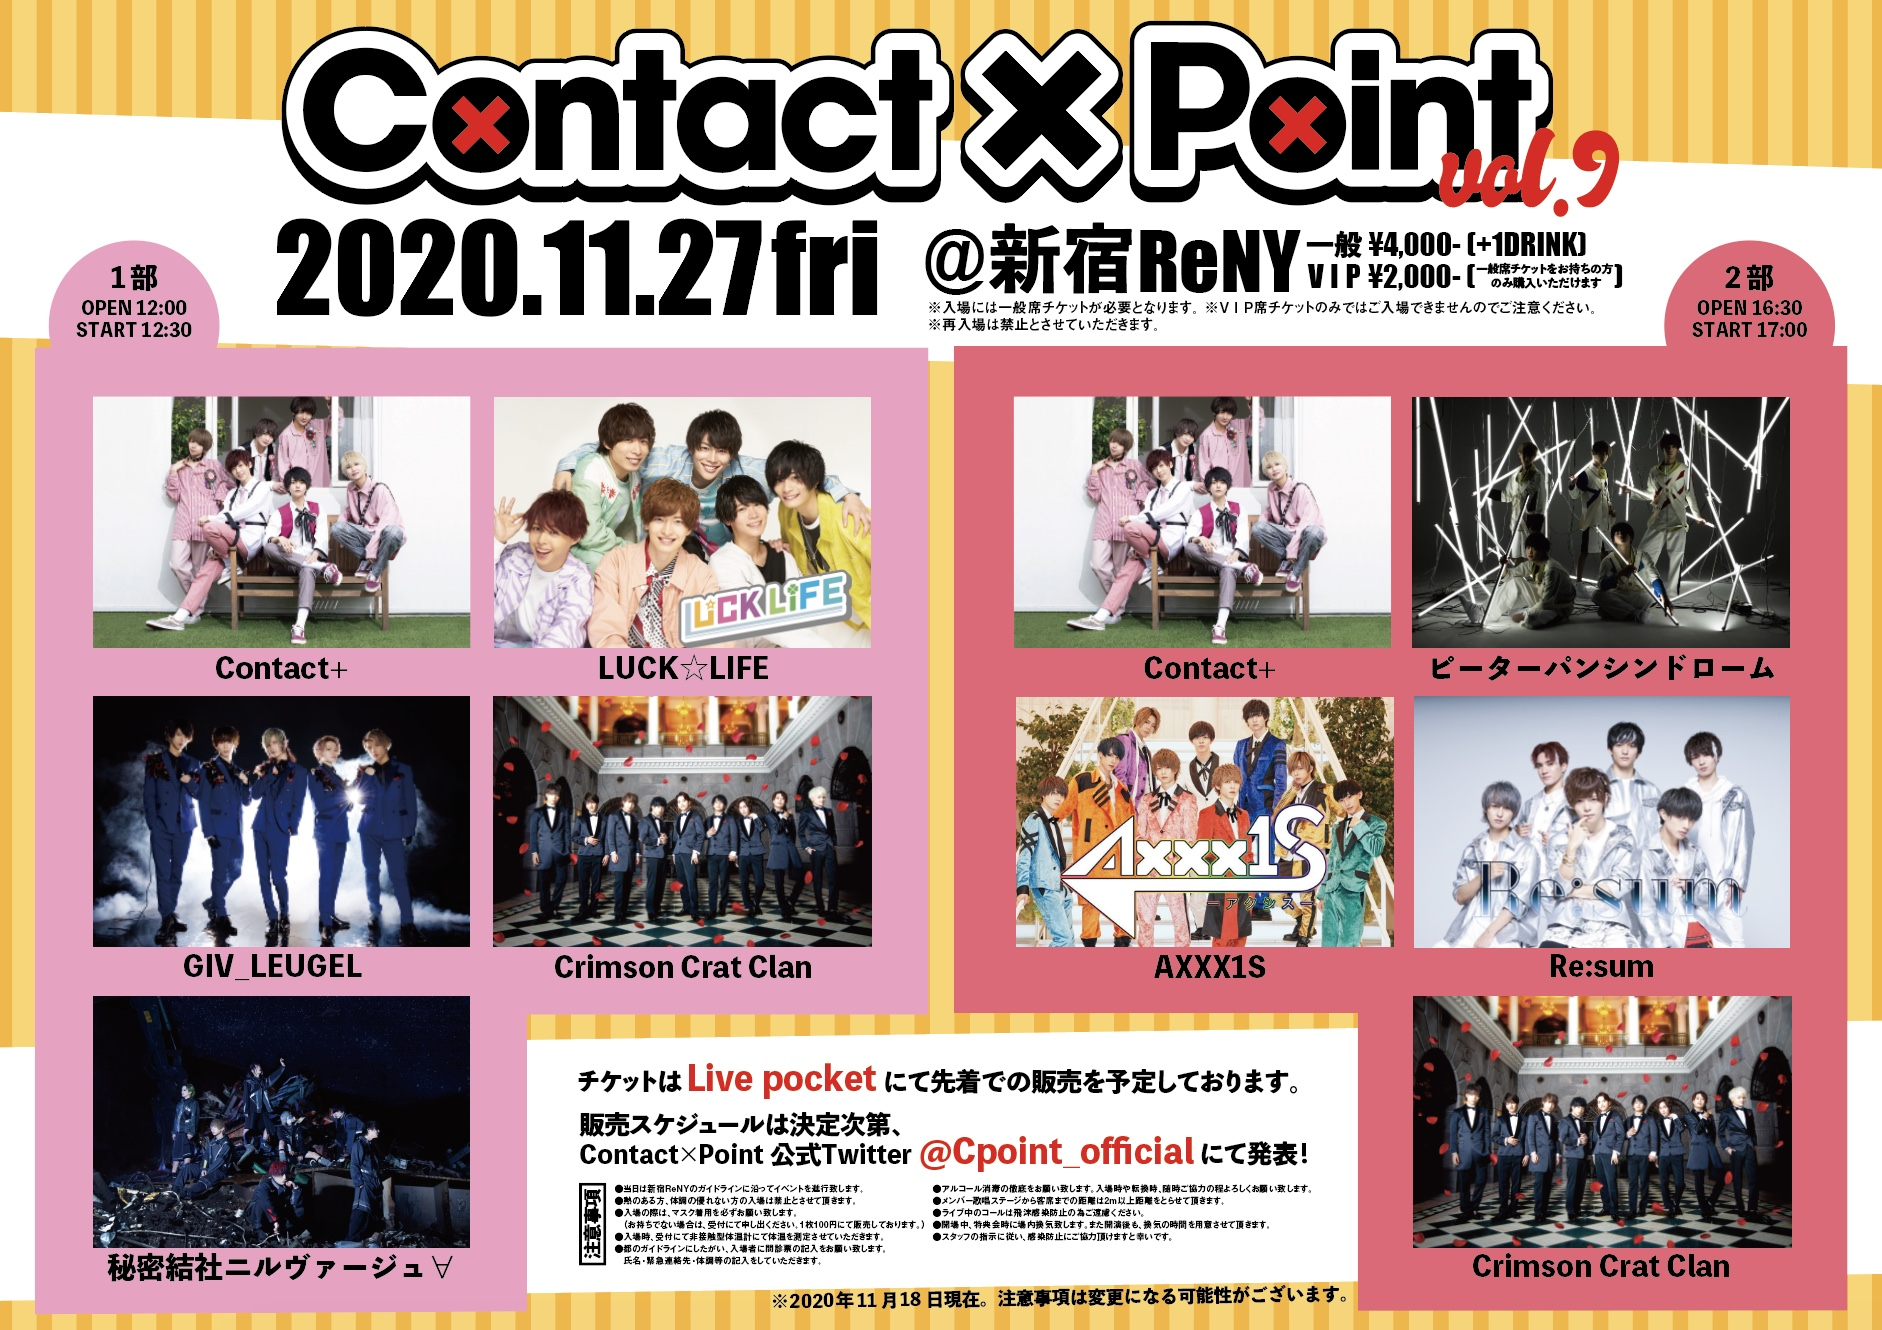 「Contact×Point Vol.9」二部【VIP席 Contact+】